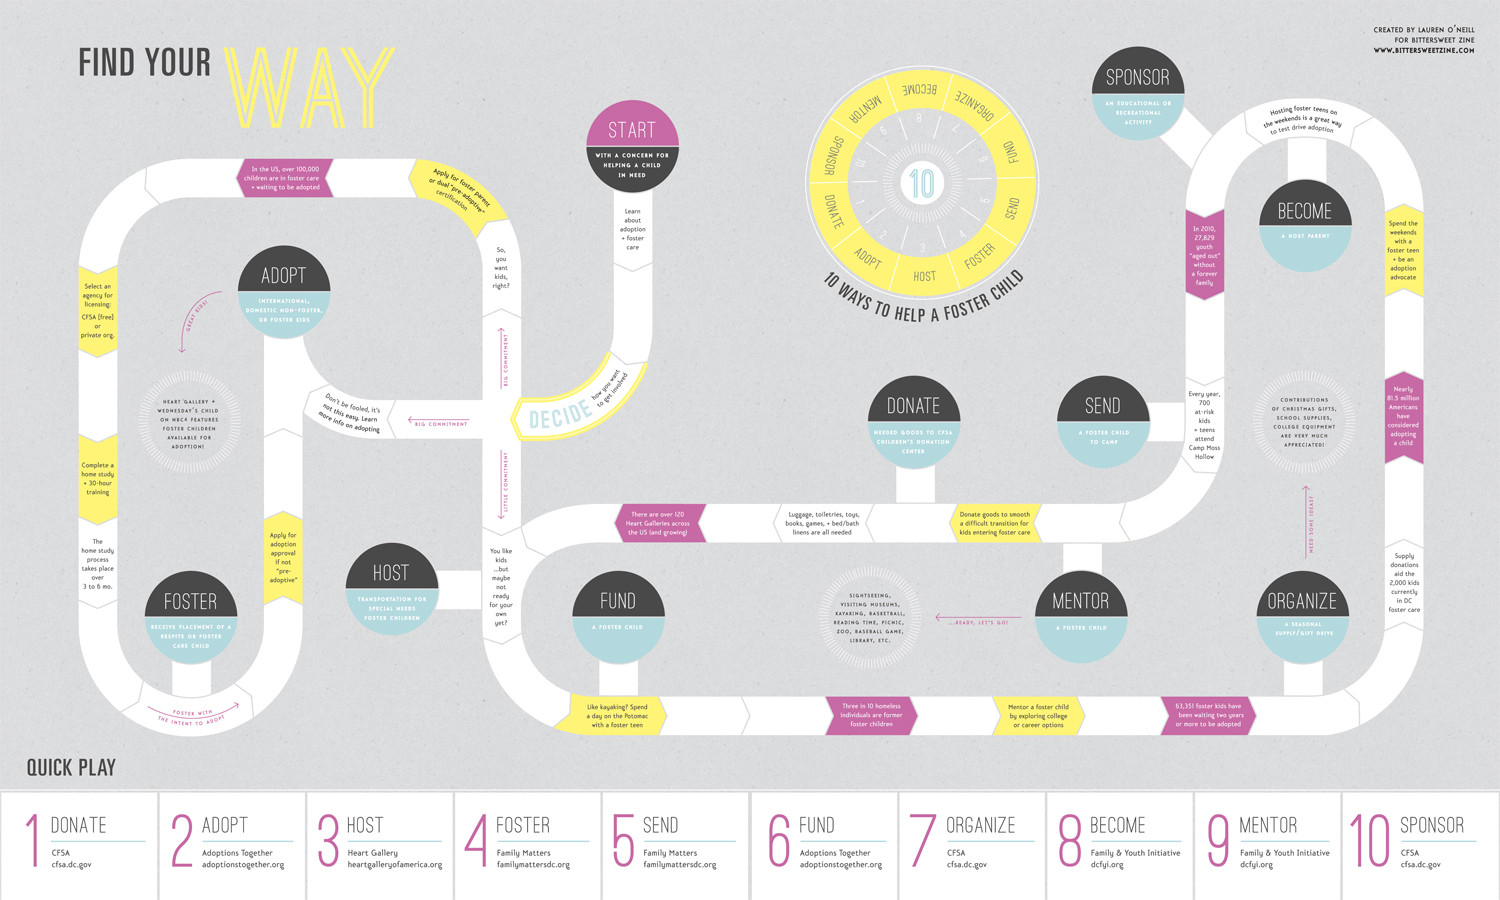 Foster Your Way Infographic